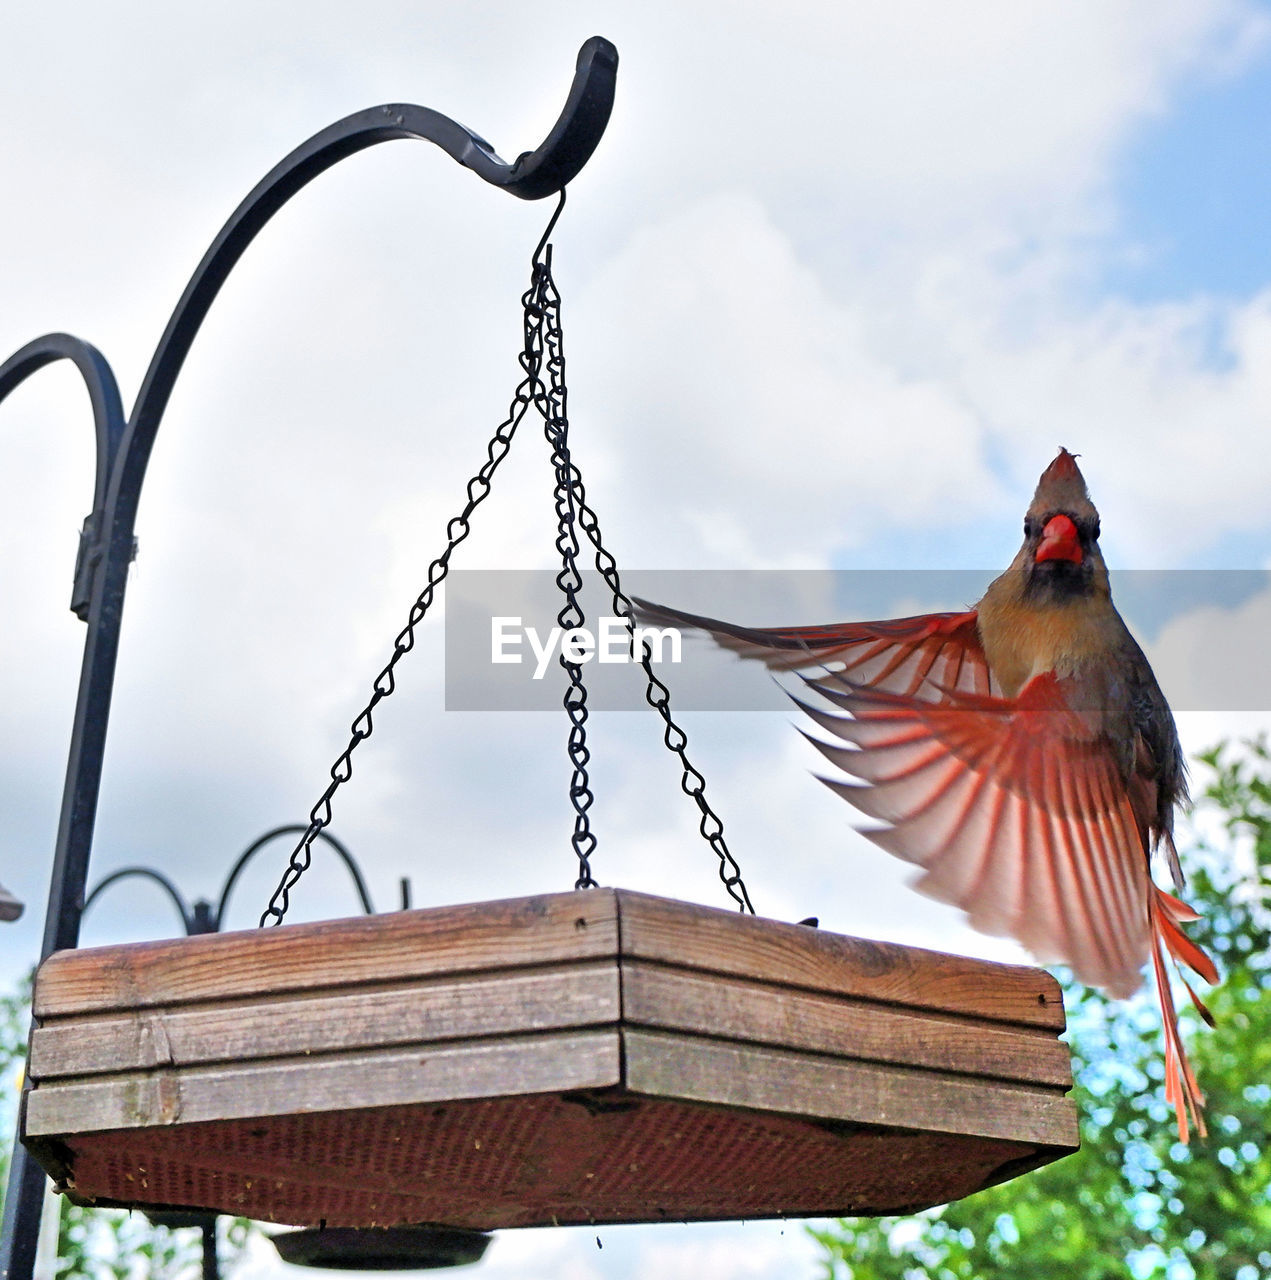 bird, vertebrate, animal themes, animal, animals in the wild, animal wildlife, one animal, perching, low angle view, focus on foreground, no people, cloud - sky, sky, metal, day, nature, architecture, outdoors, built structure, roof